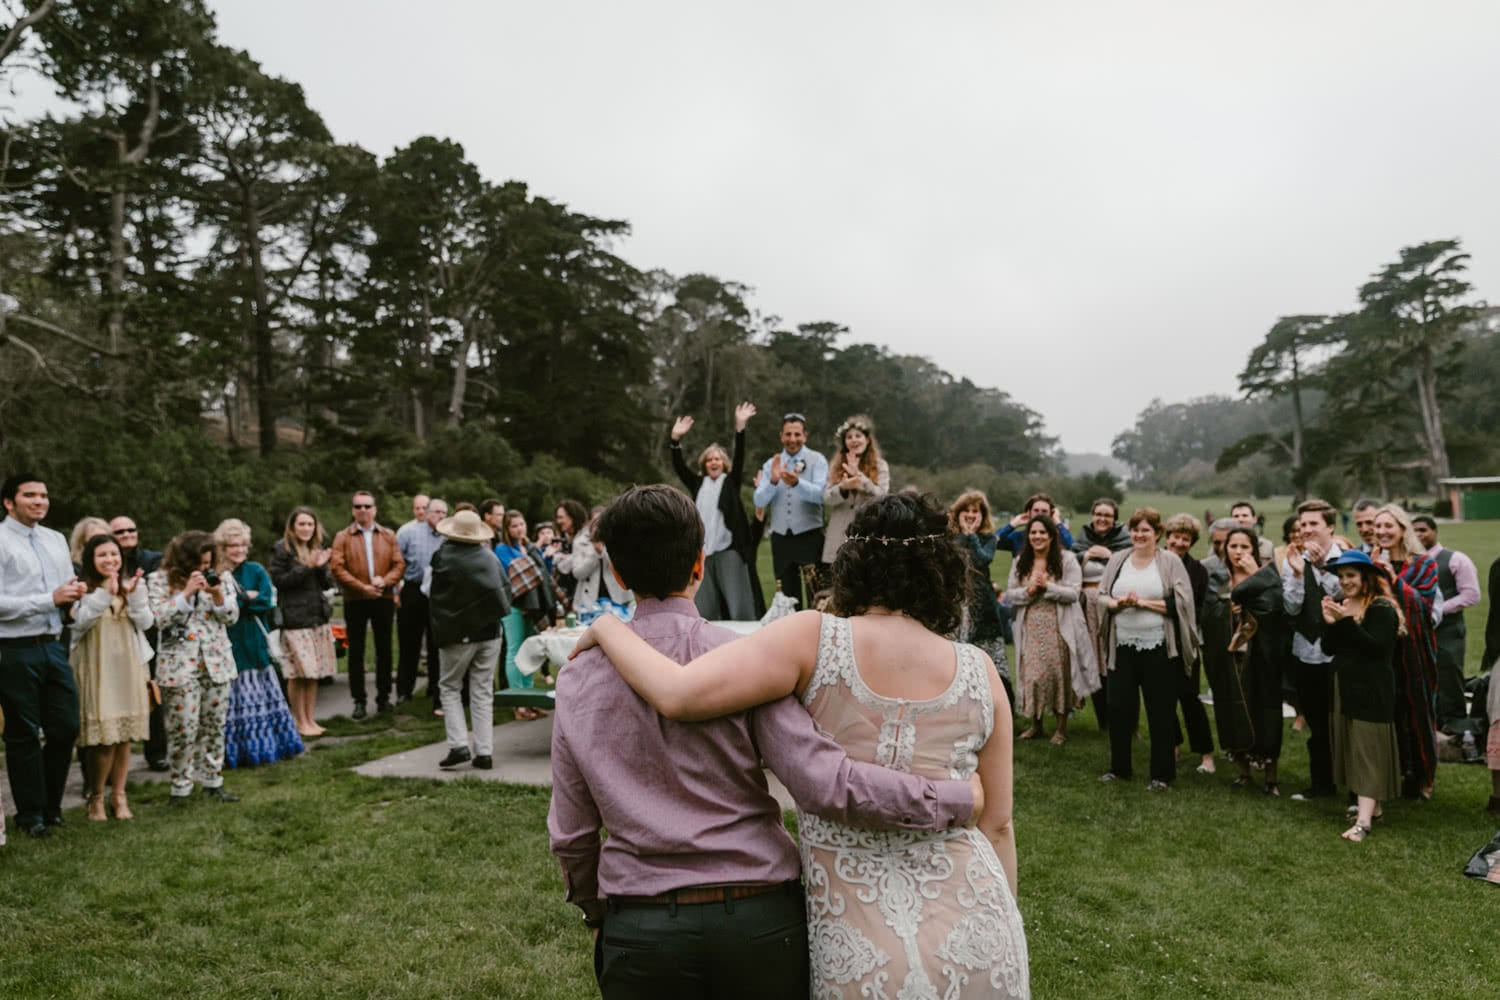 San Francisco wedding photographer Paige Nelson